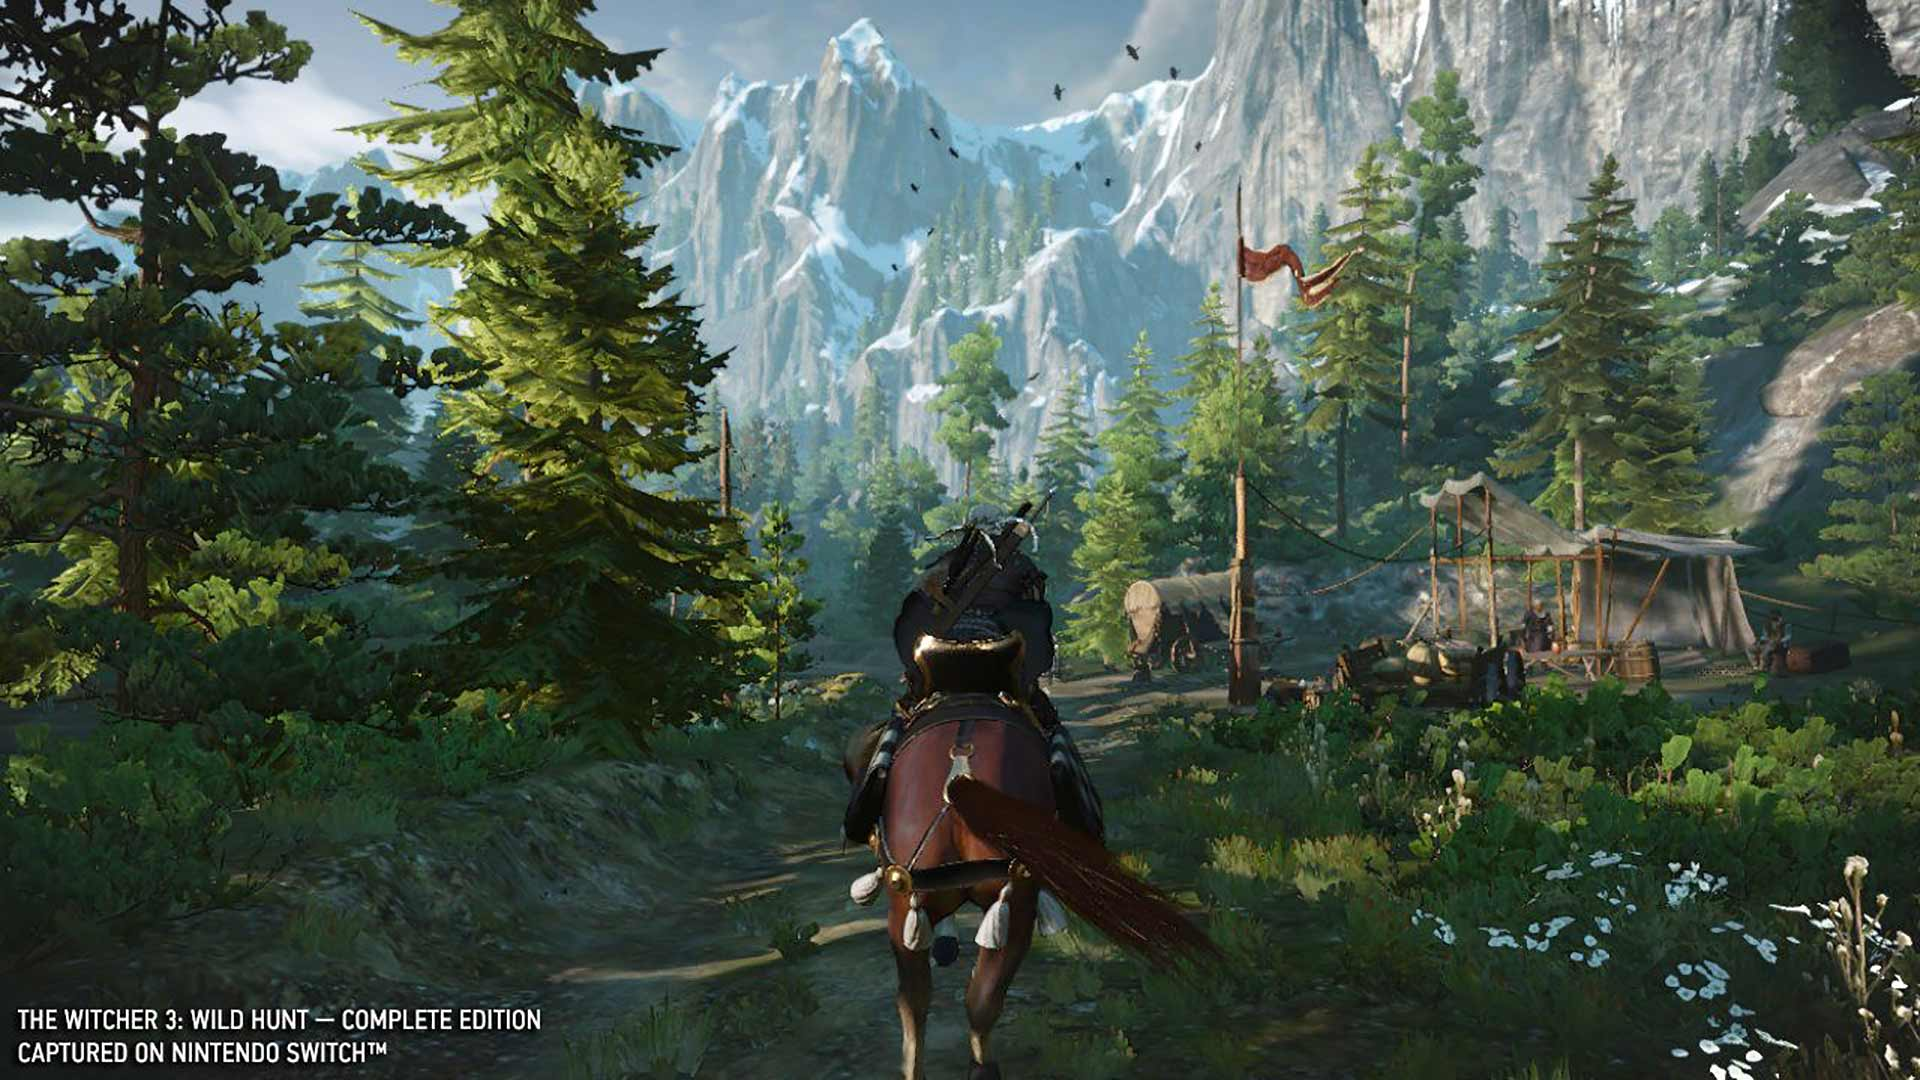 The Witcher 3 Geralt on horseback